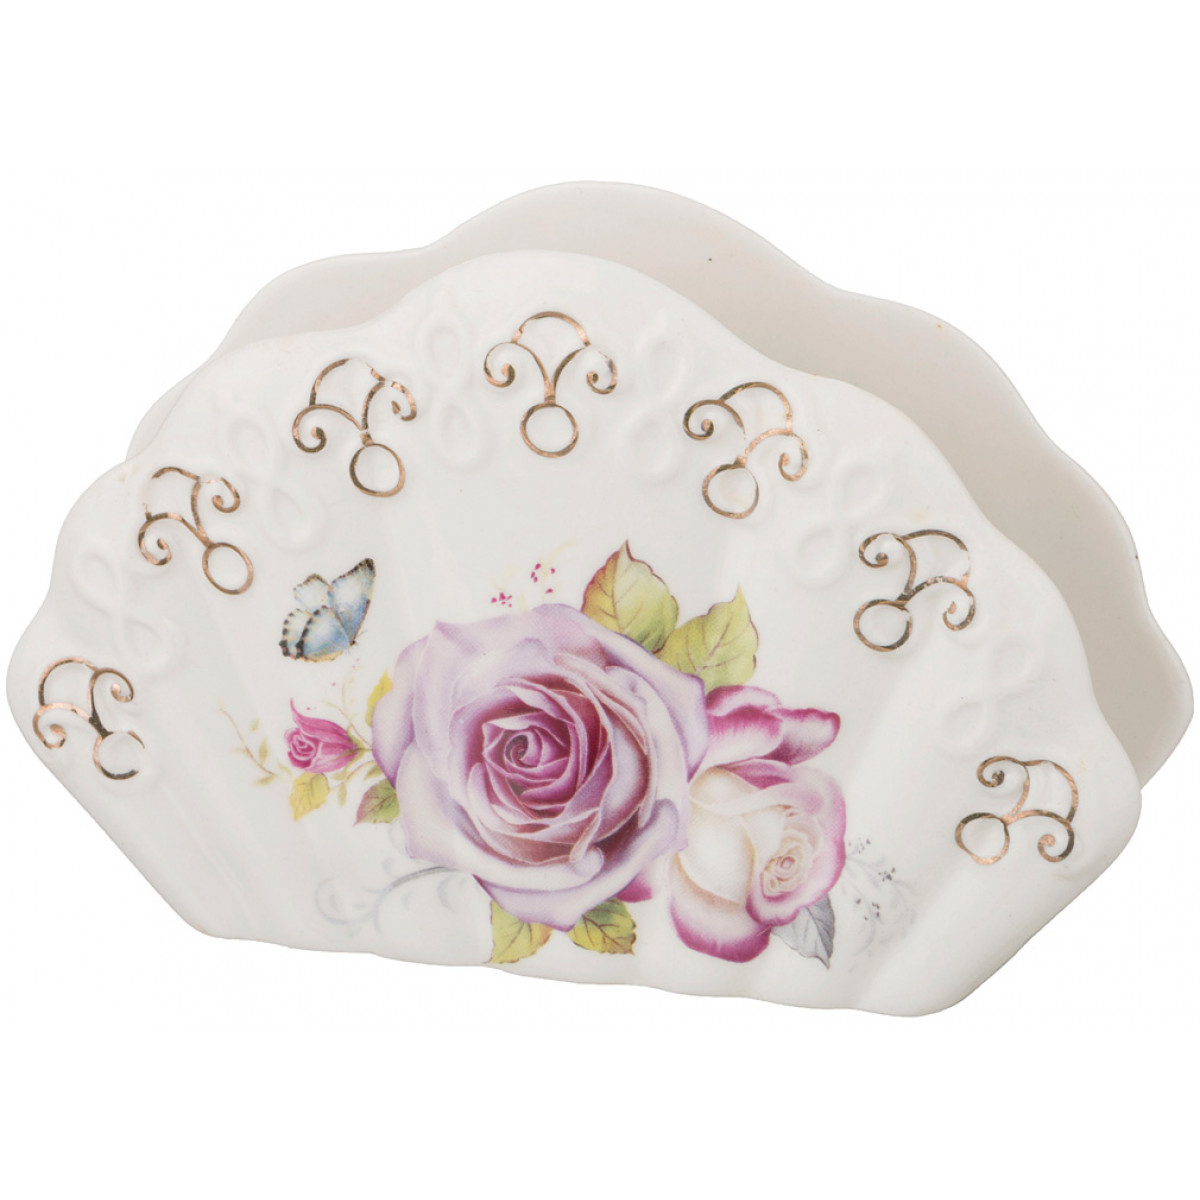 {} Royal Porcelain Сервиз Monterrey (3х9х14 см) royal view place 3 паттайя